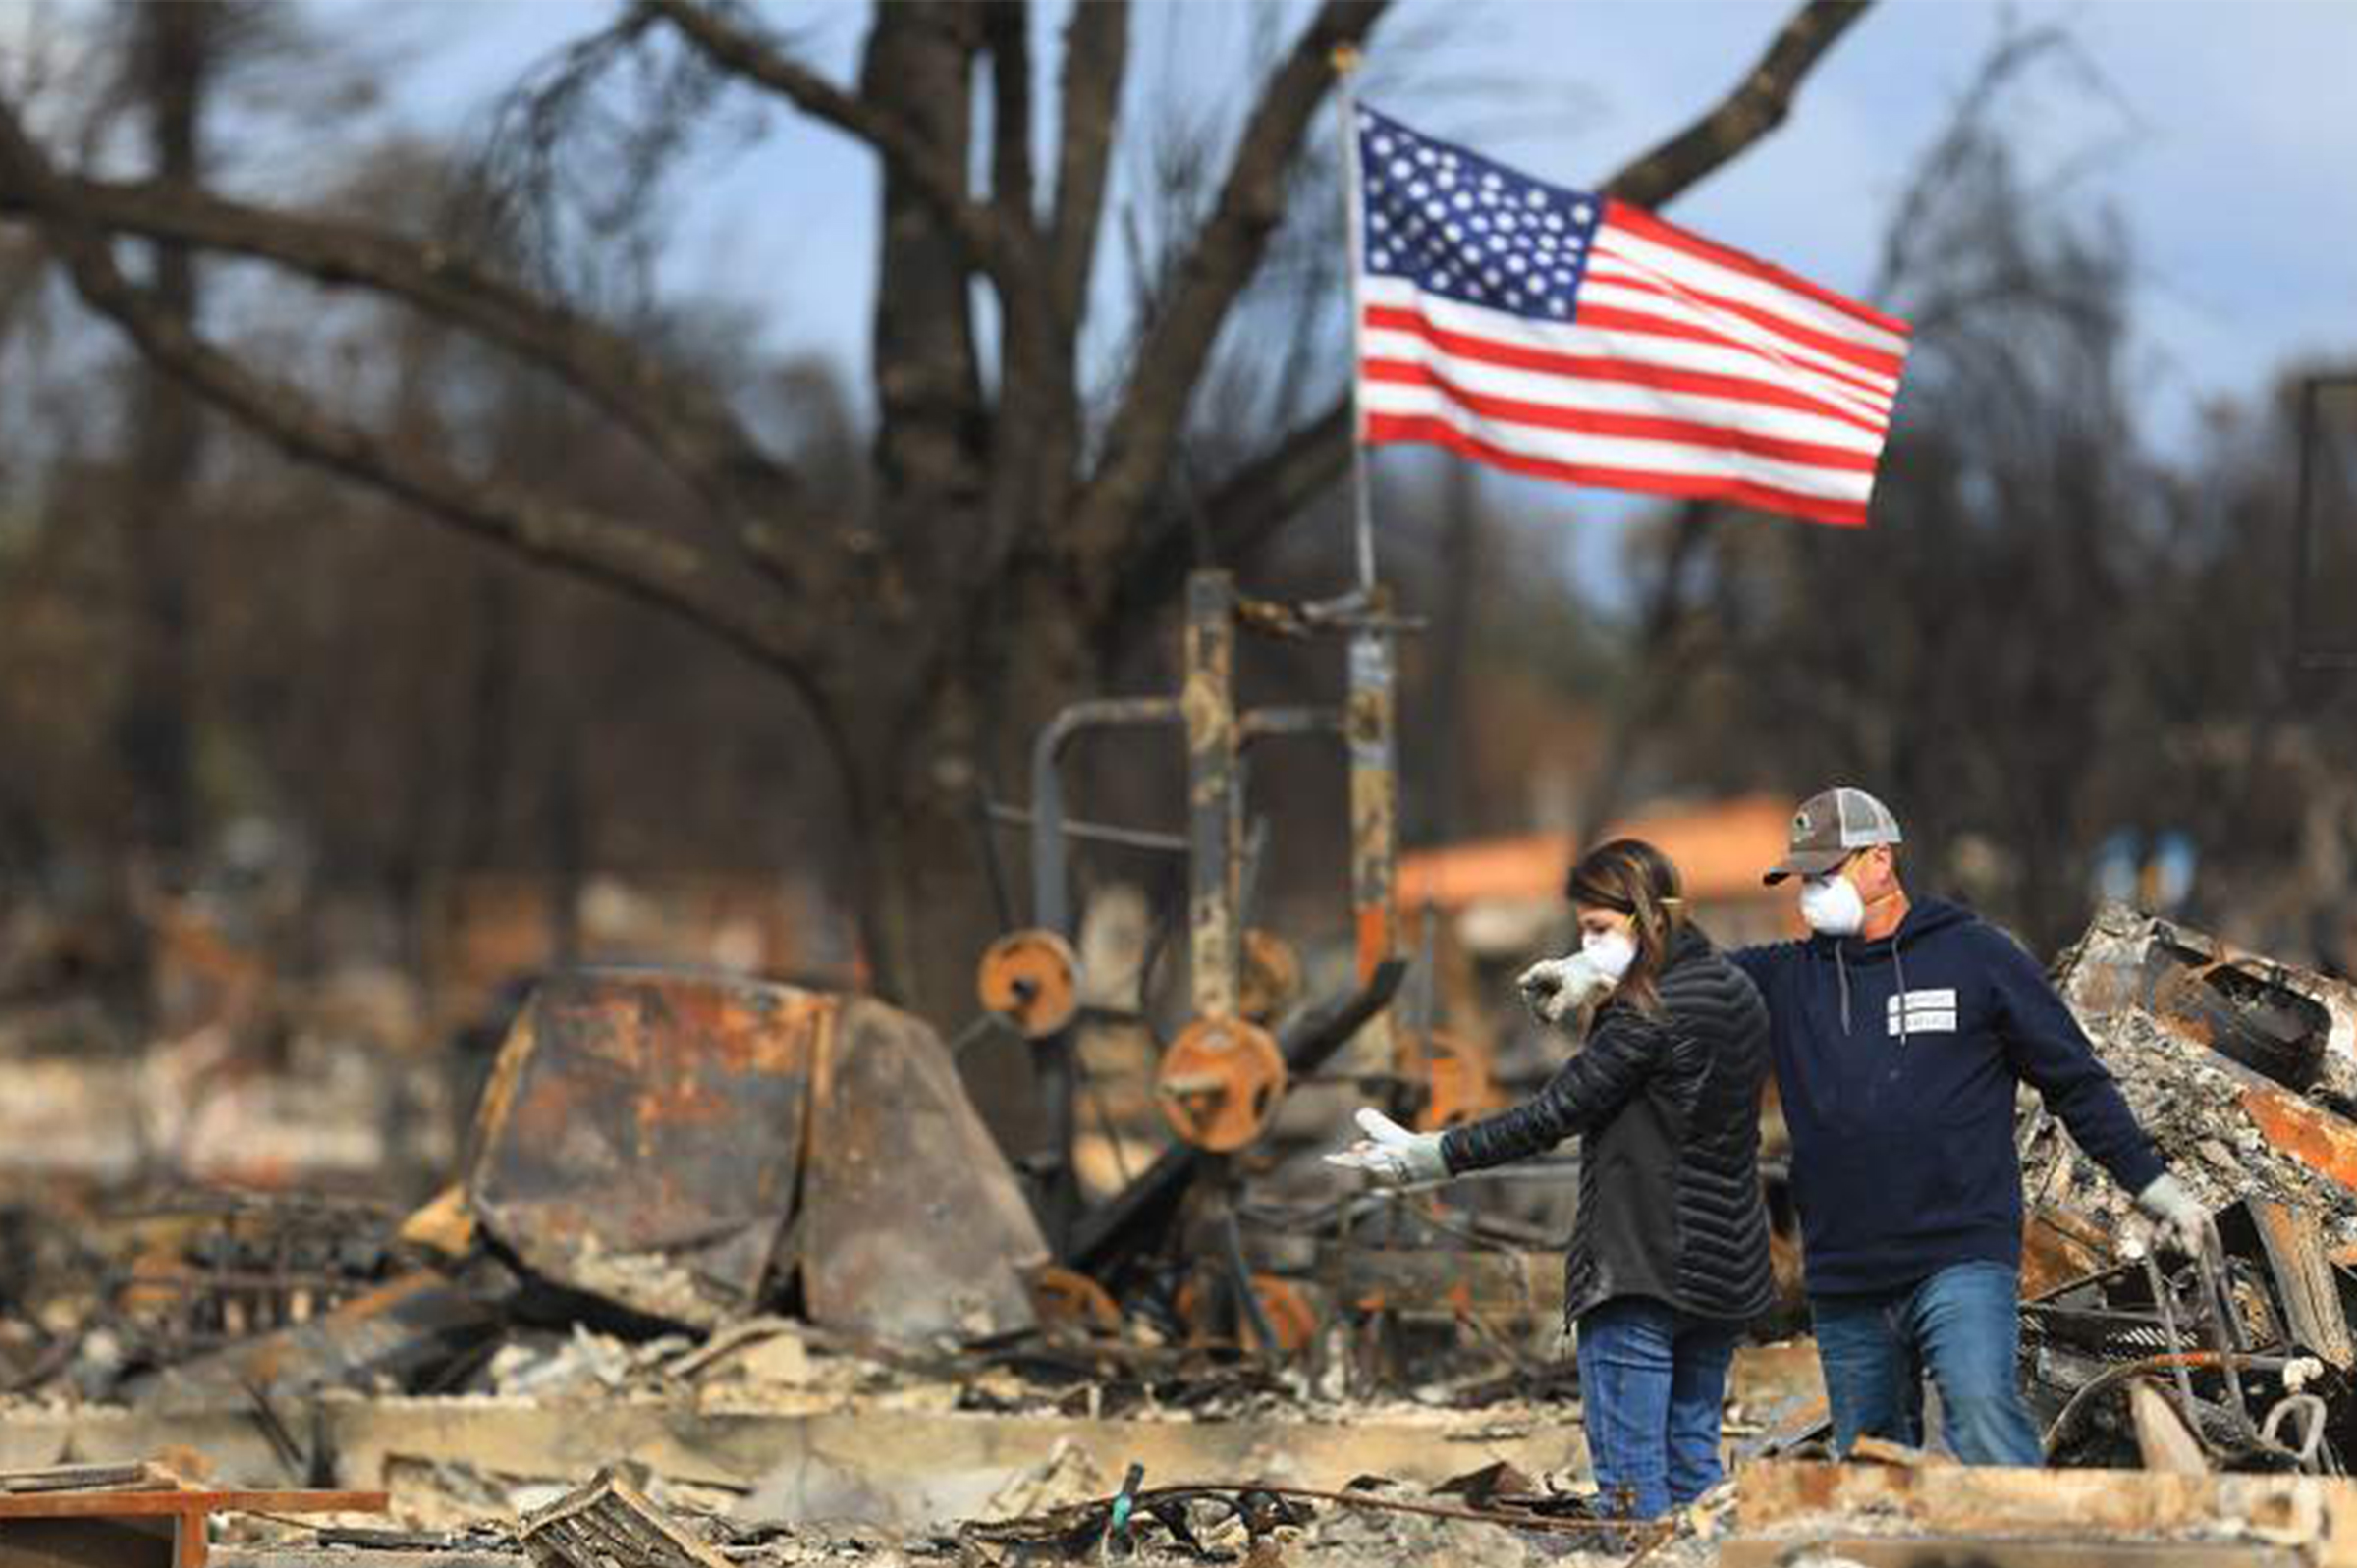 CVNL In The News: North Bay Fire Relief Fund To Send Out Second Wave Of Financial Aid For Those Impacted By Fires